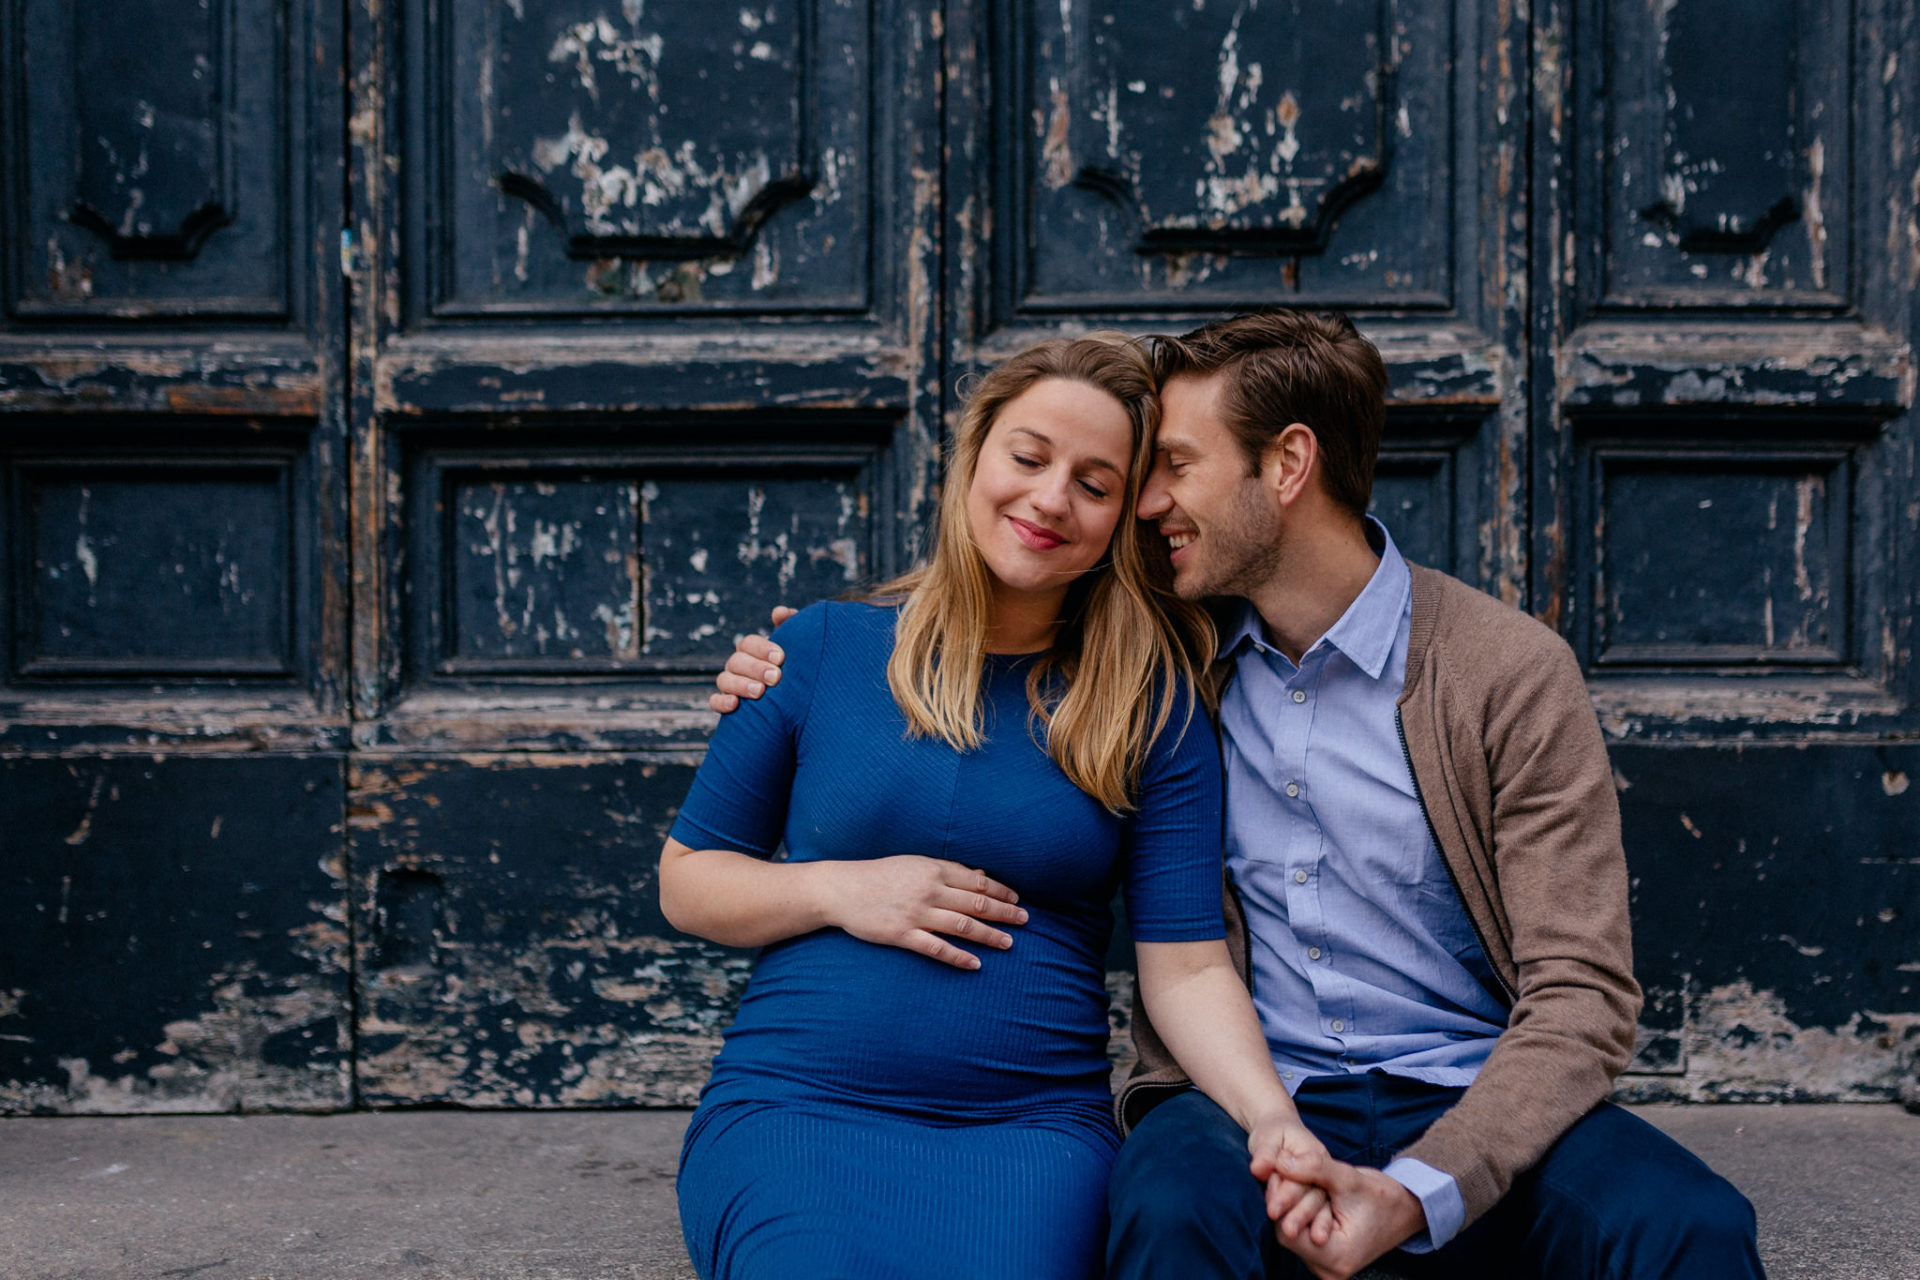 engagement shoot rome- couple photos-city trip-maternity photos-wedding photographer italy-intimate portraits-old church doors